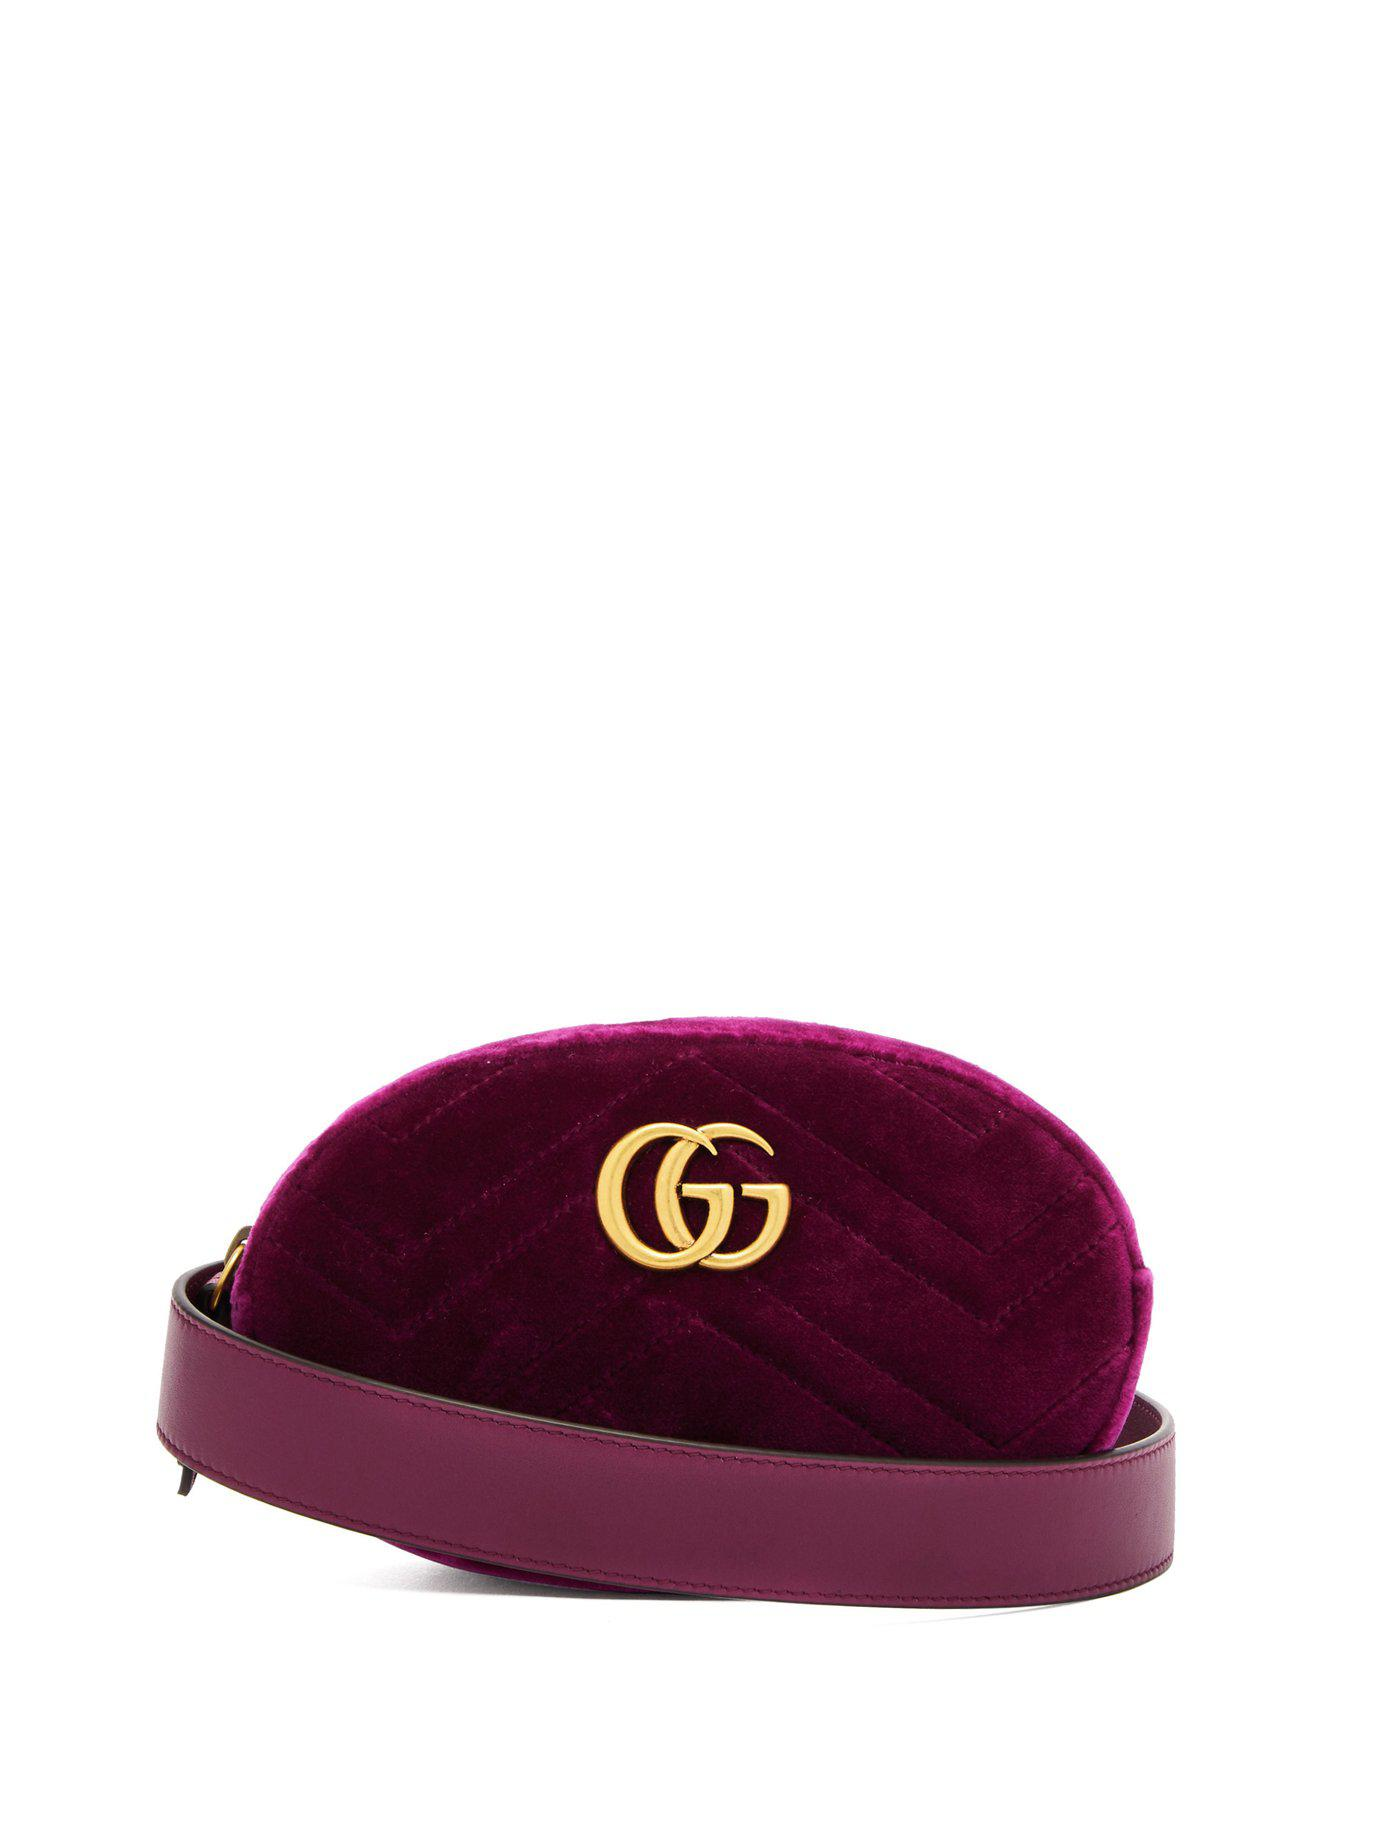 a53b47e9a05 Lyst - Gucci Gg Marmont Velvet Belt Bag in Purple